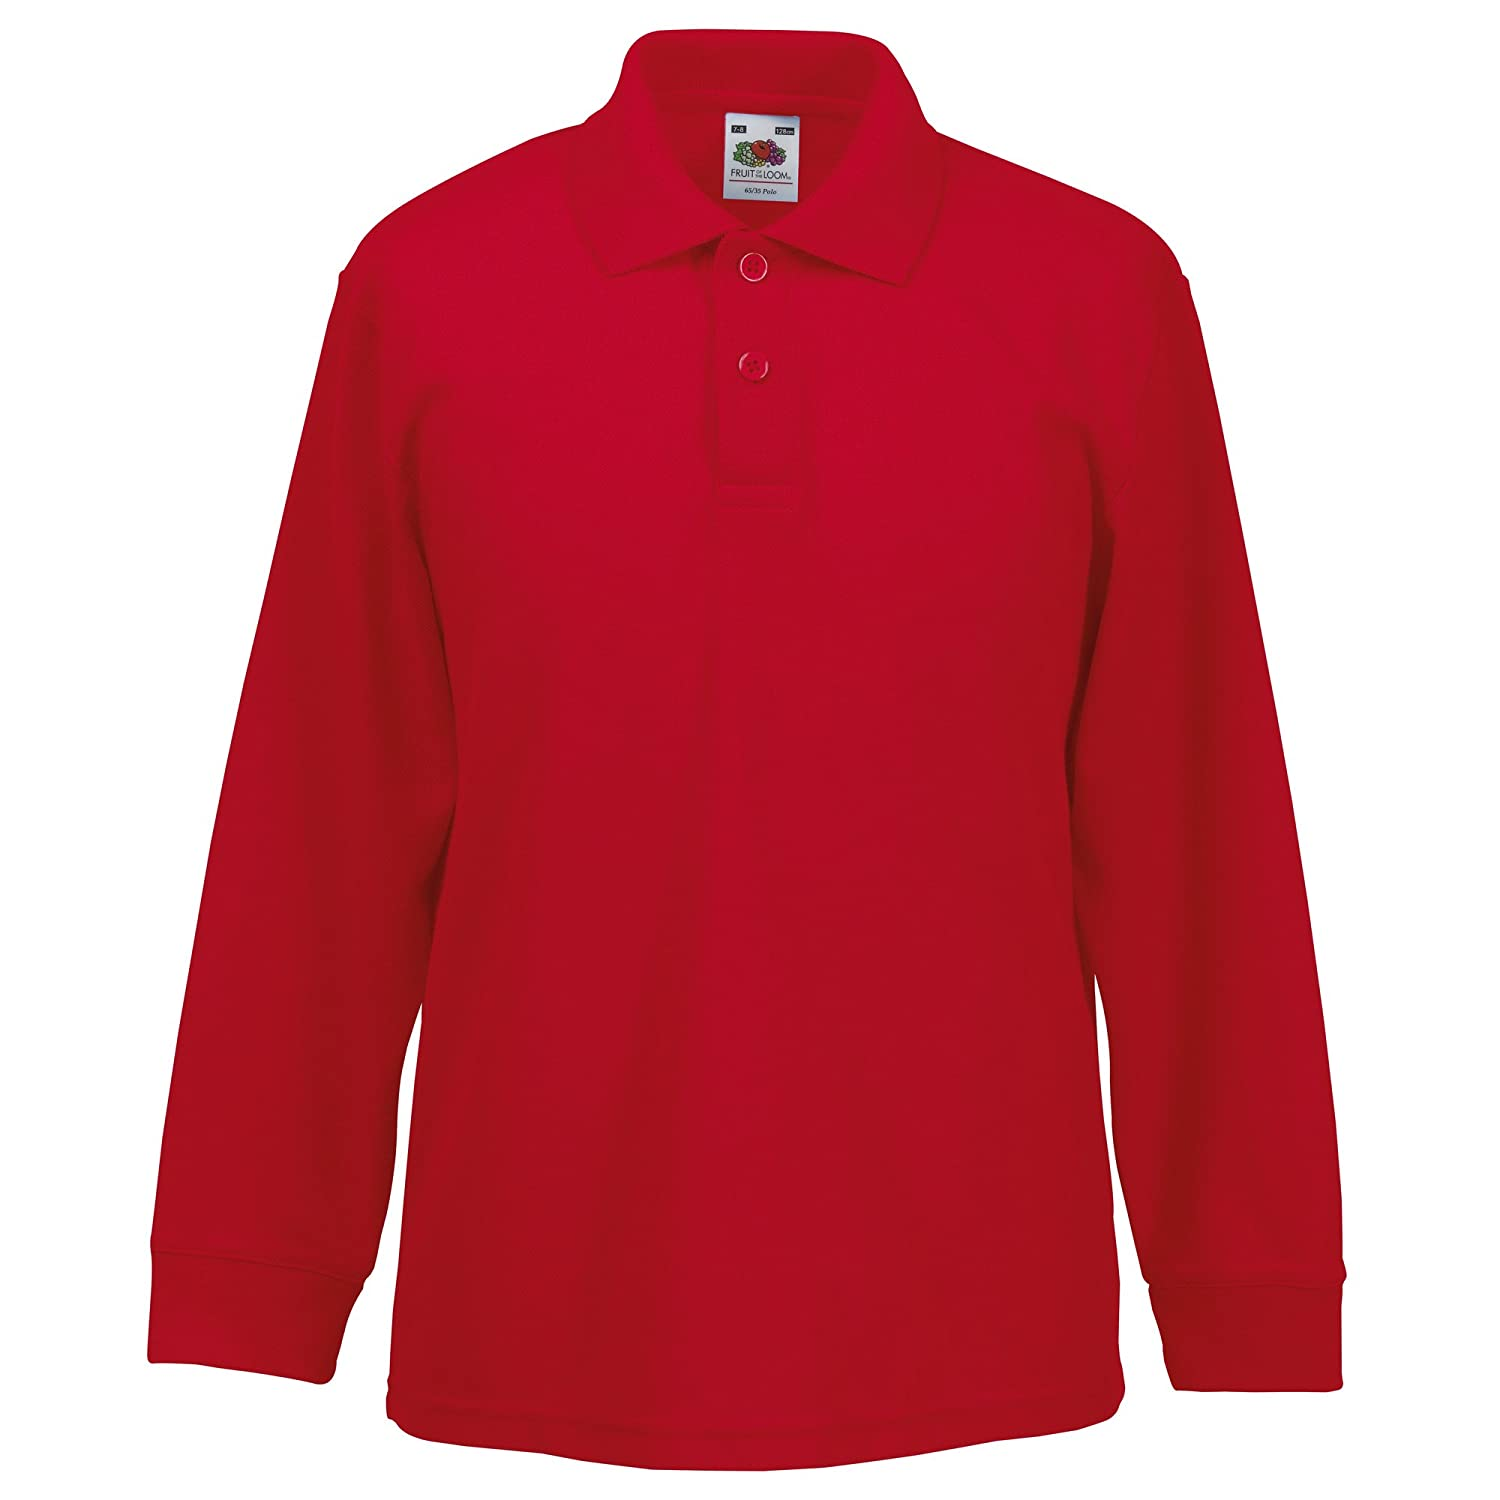 a3281783 Fruit of the Loom Childrens Big Boys Long Sleeve Polo Shirts: Amazon.ca:  Clothing & Accessories